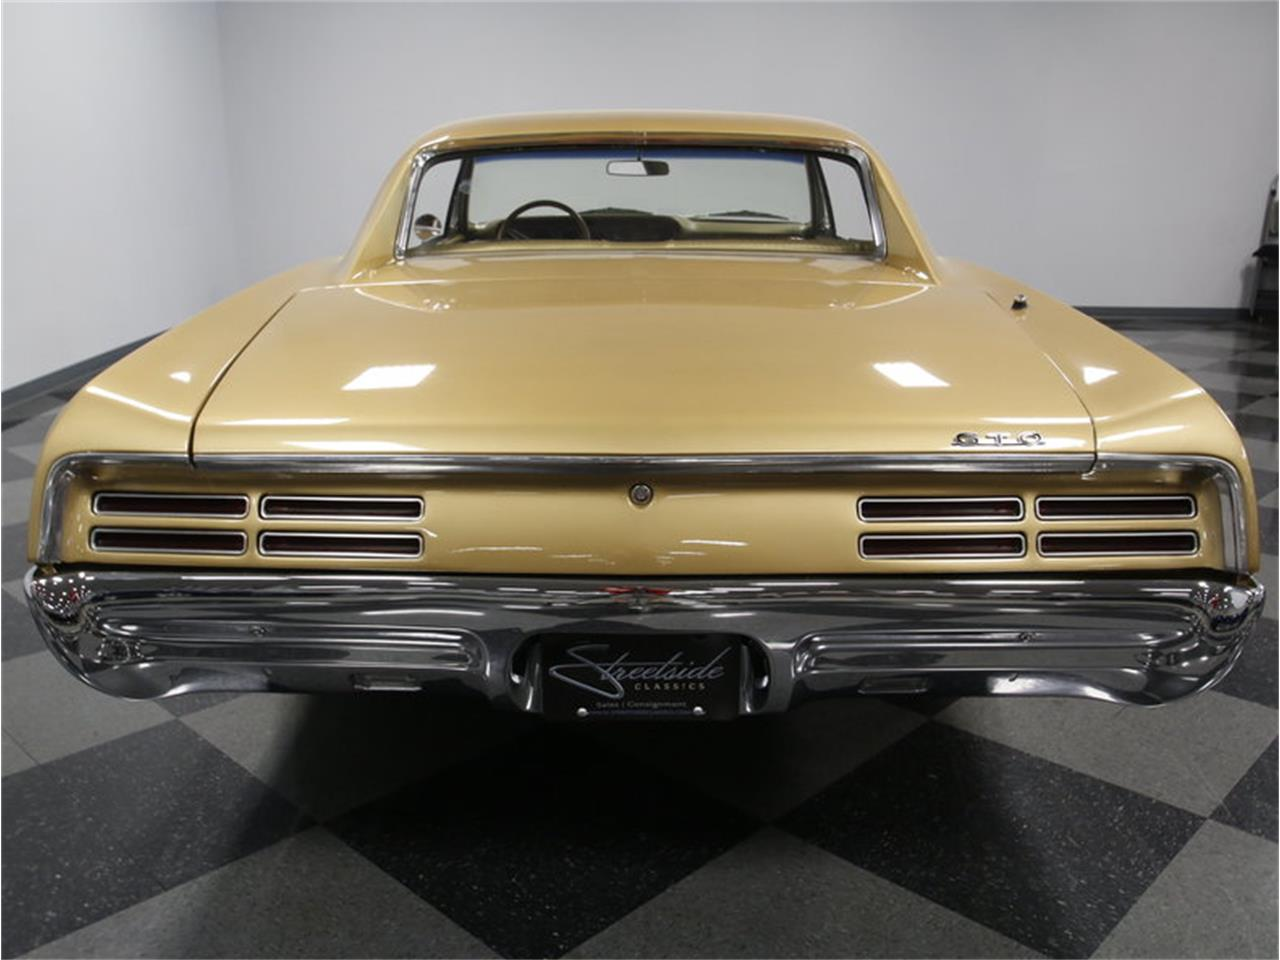 Large Picture of 1967 Pontiac GTO located in North Carolina - $51,995.00 Offered by Streetside Classics - Charlotte - L52I